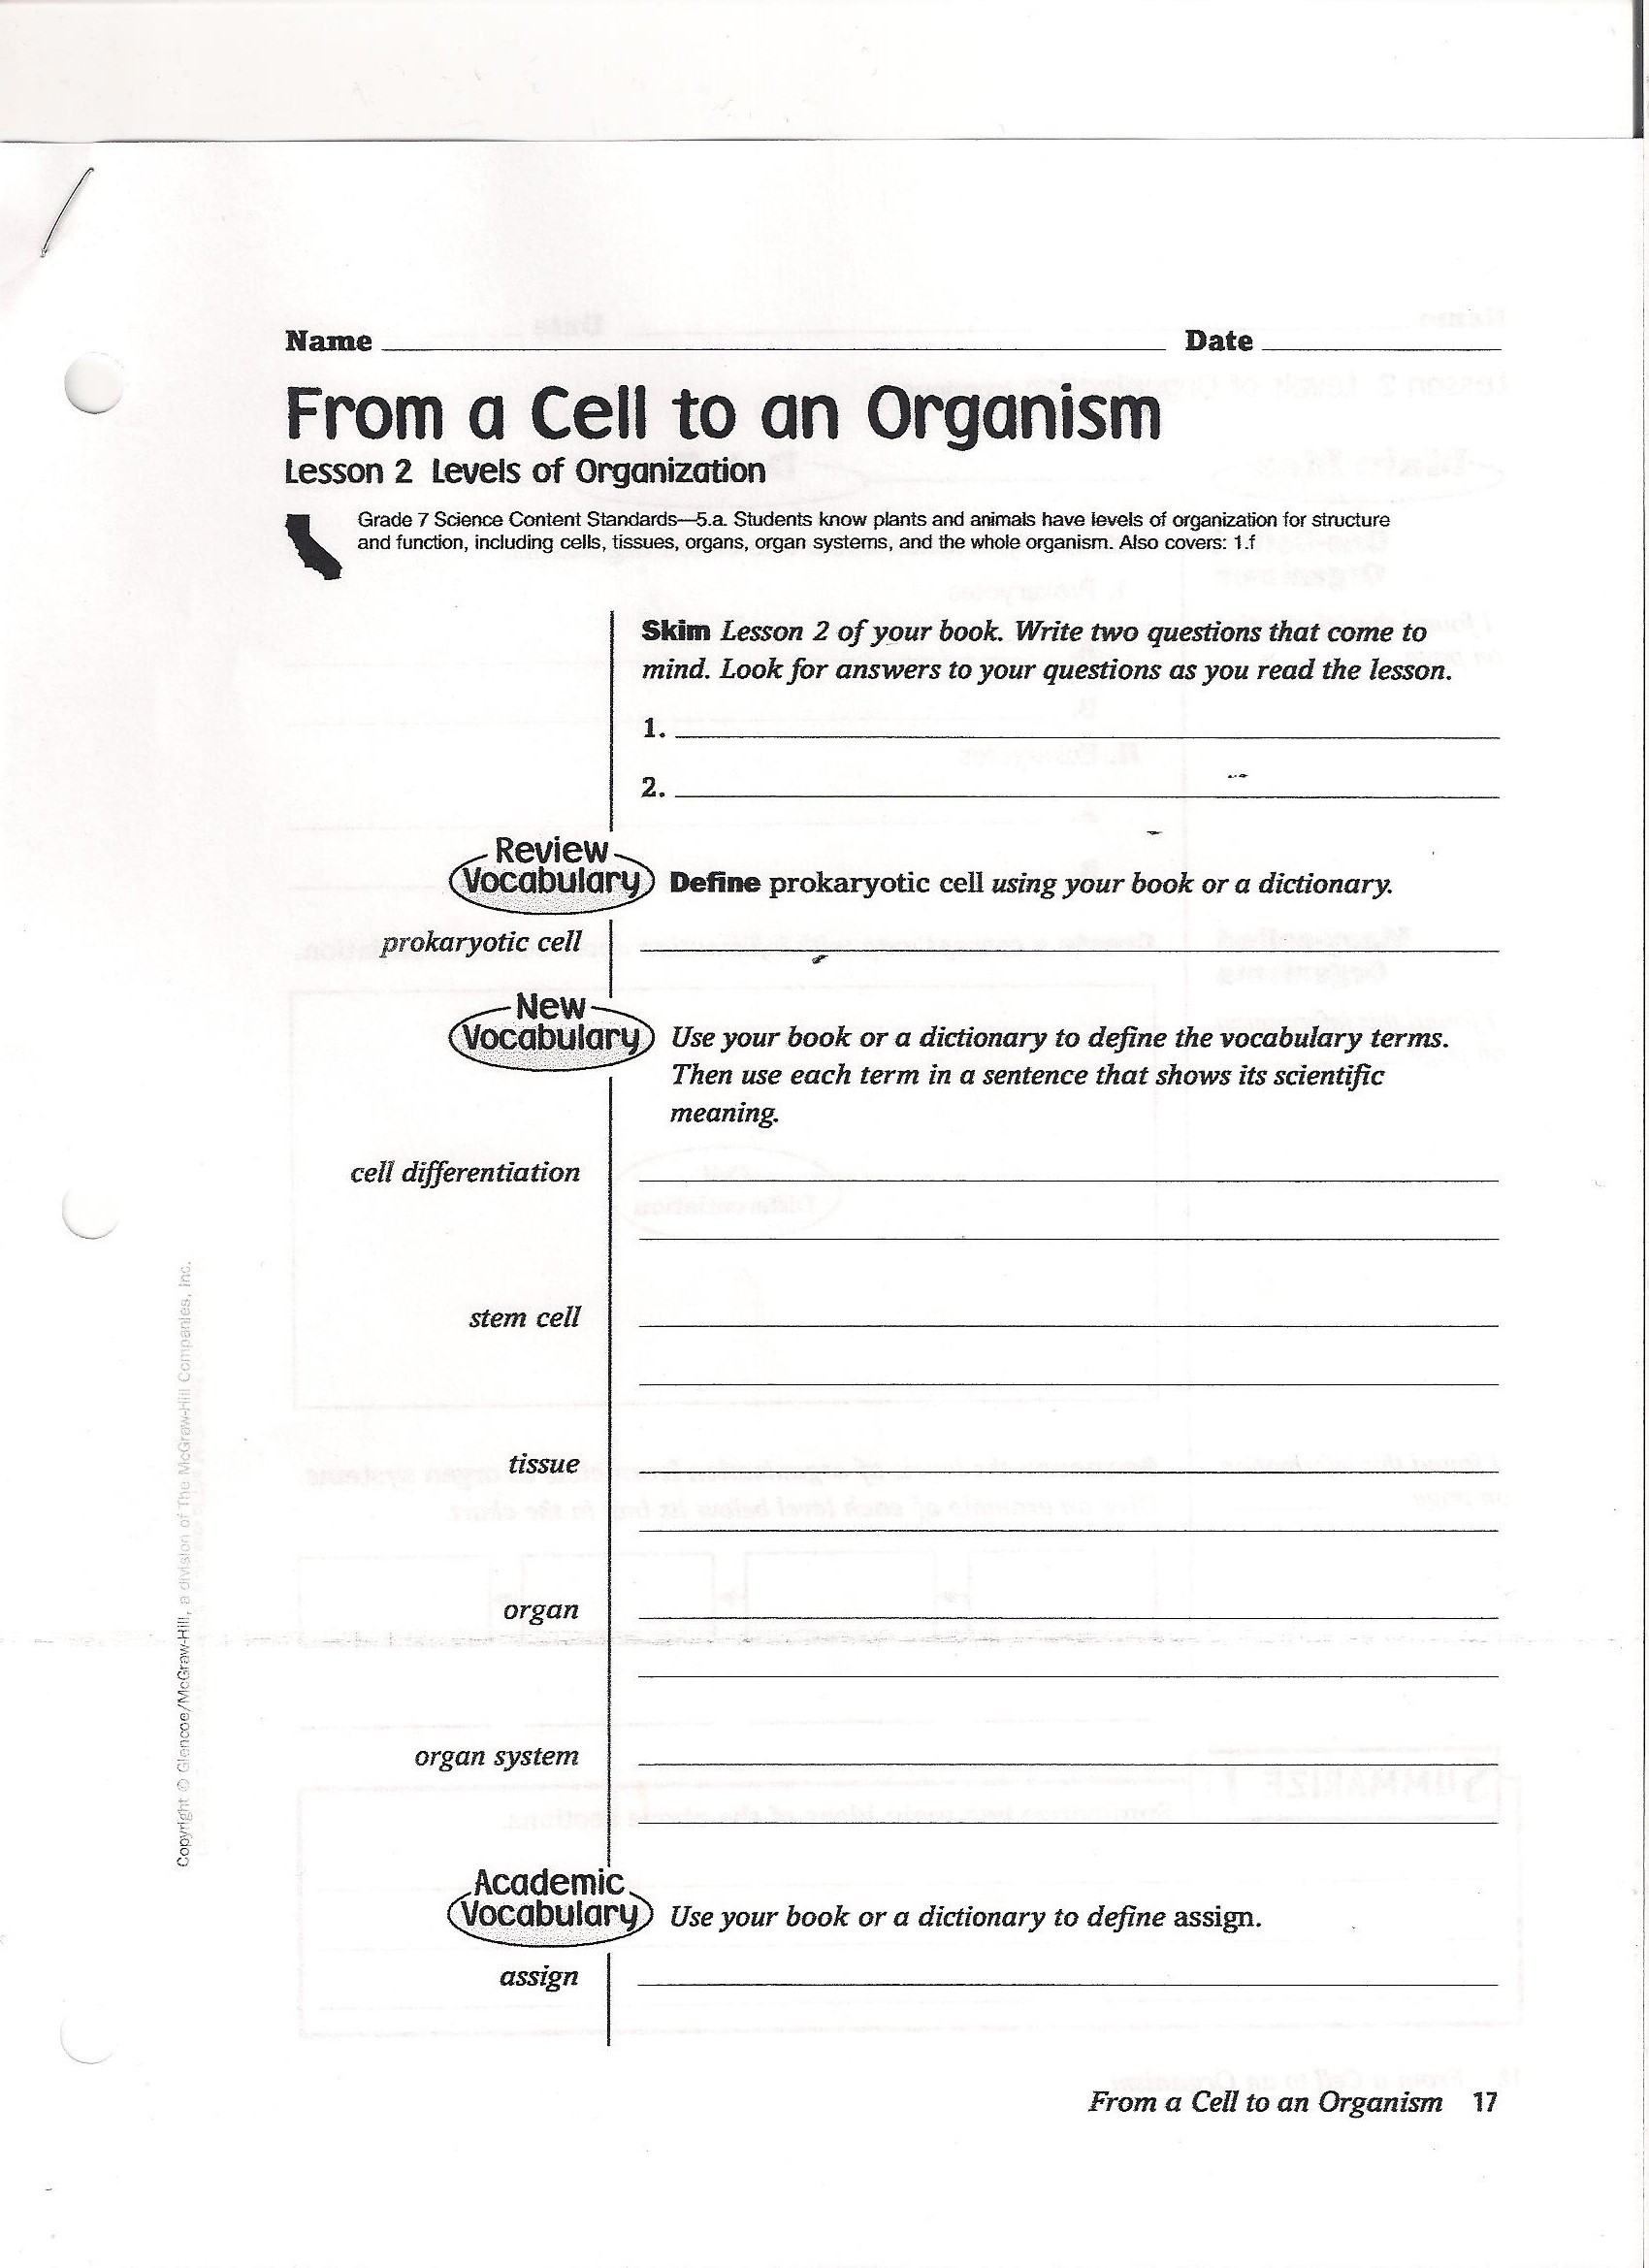 7th Grade Science Worksheets Unique is Life Science Worksheet Educational 7th Grade Cell